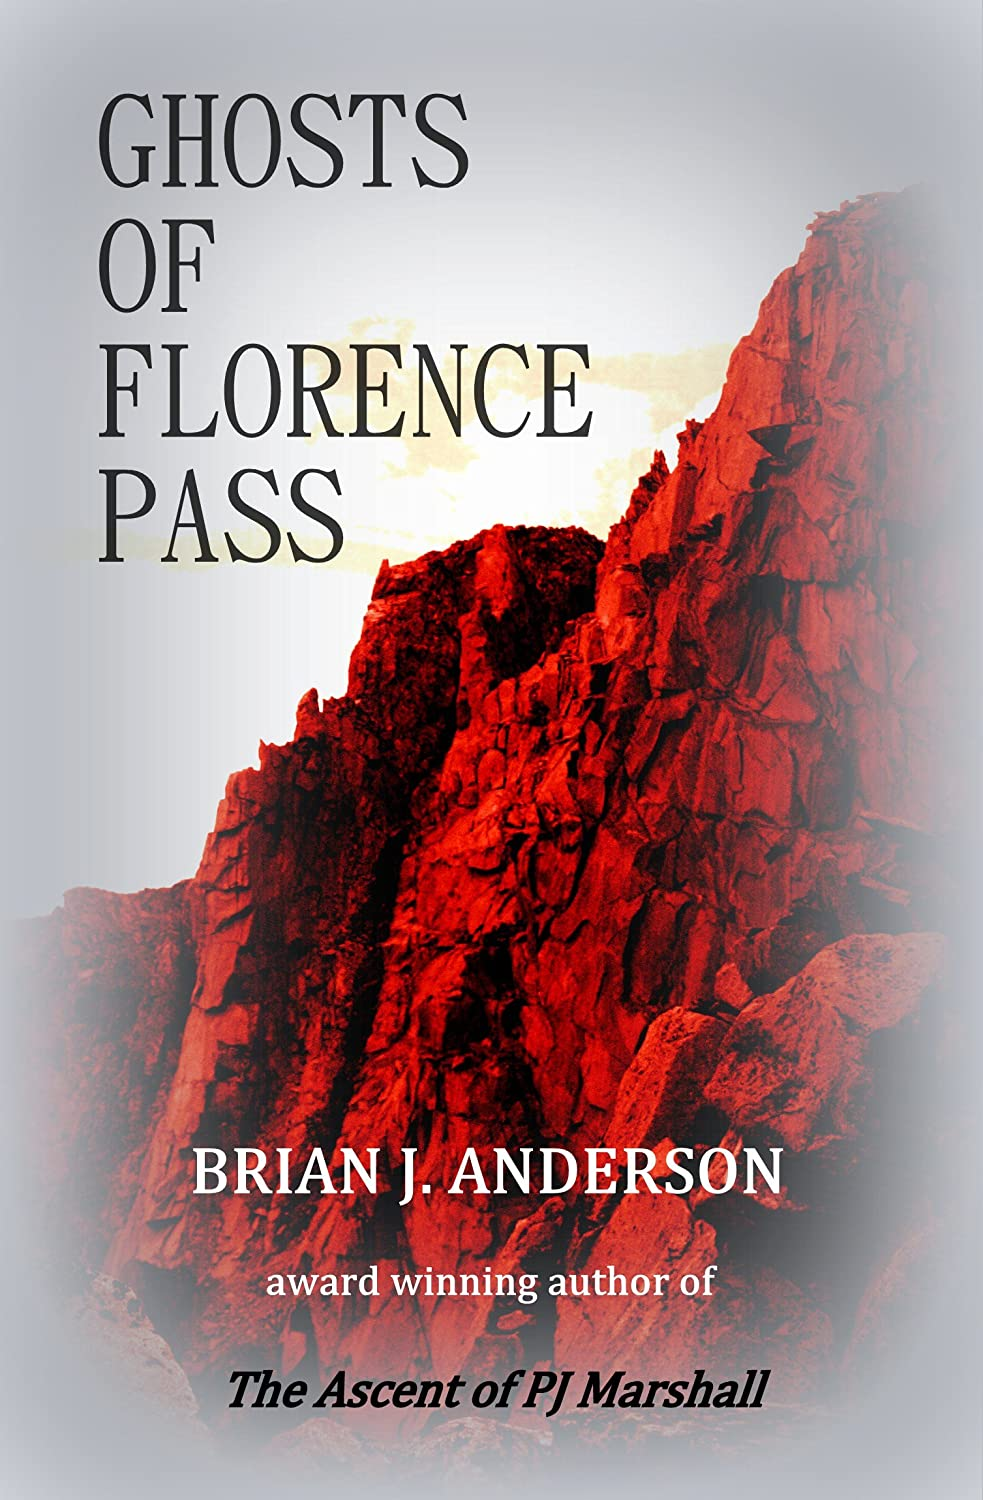 Ghosts-of-Florence-Pass-cover_2